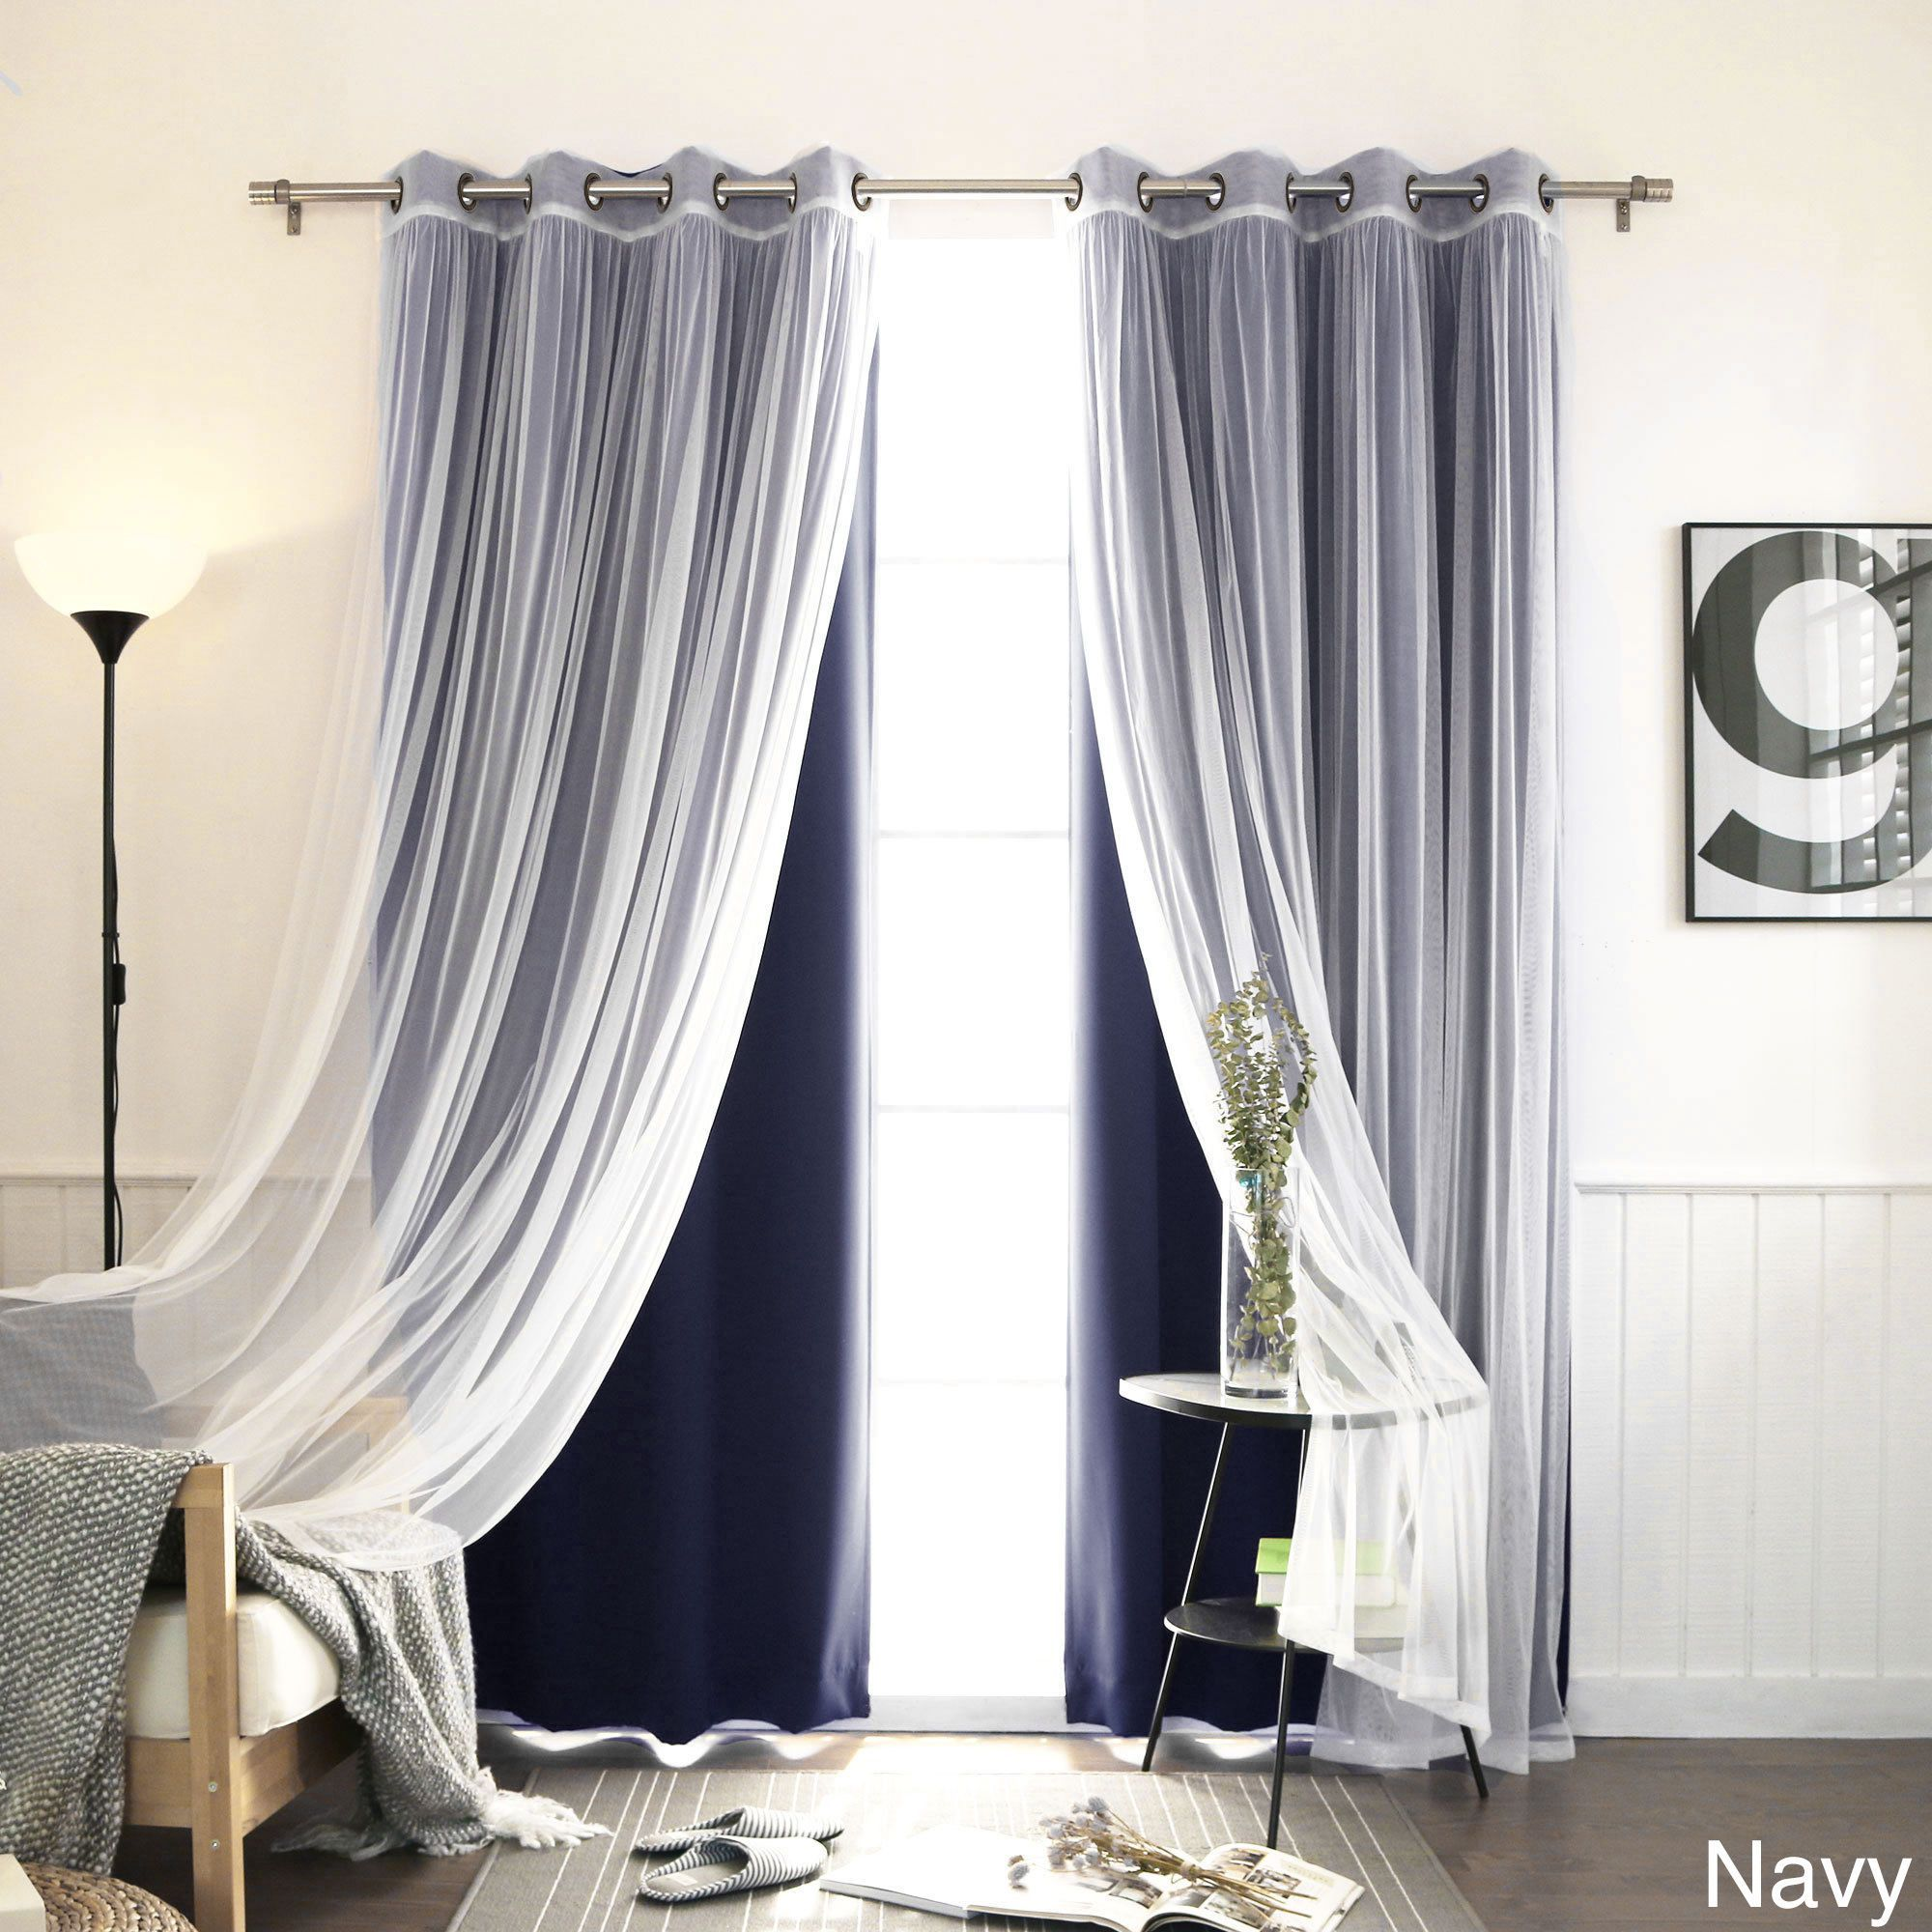 Lace Bedroom Curtains Aurora Home Mix Match Blackout With Tulle Lace Sheer 4 Piece